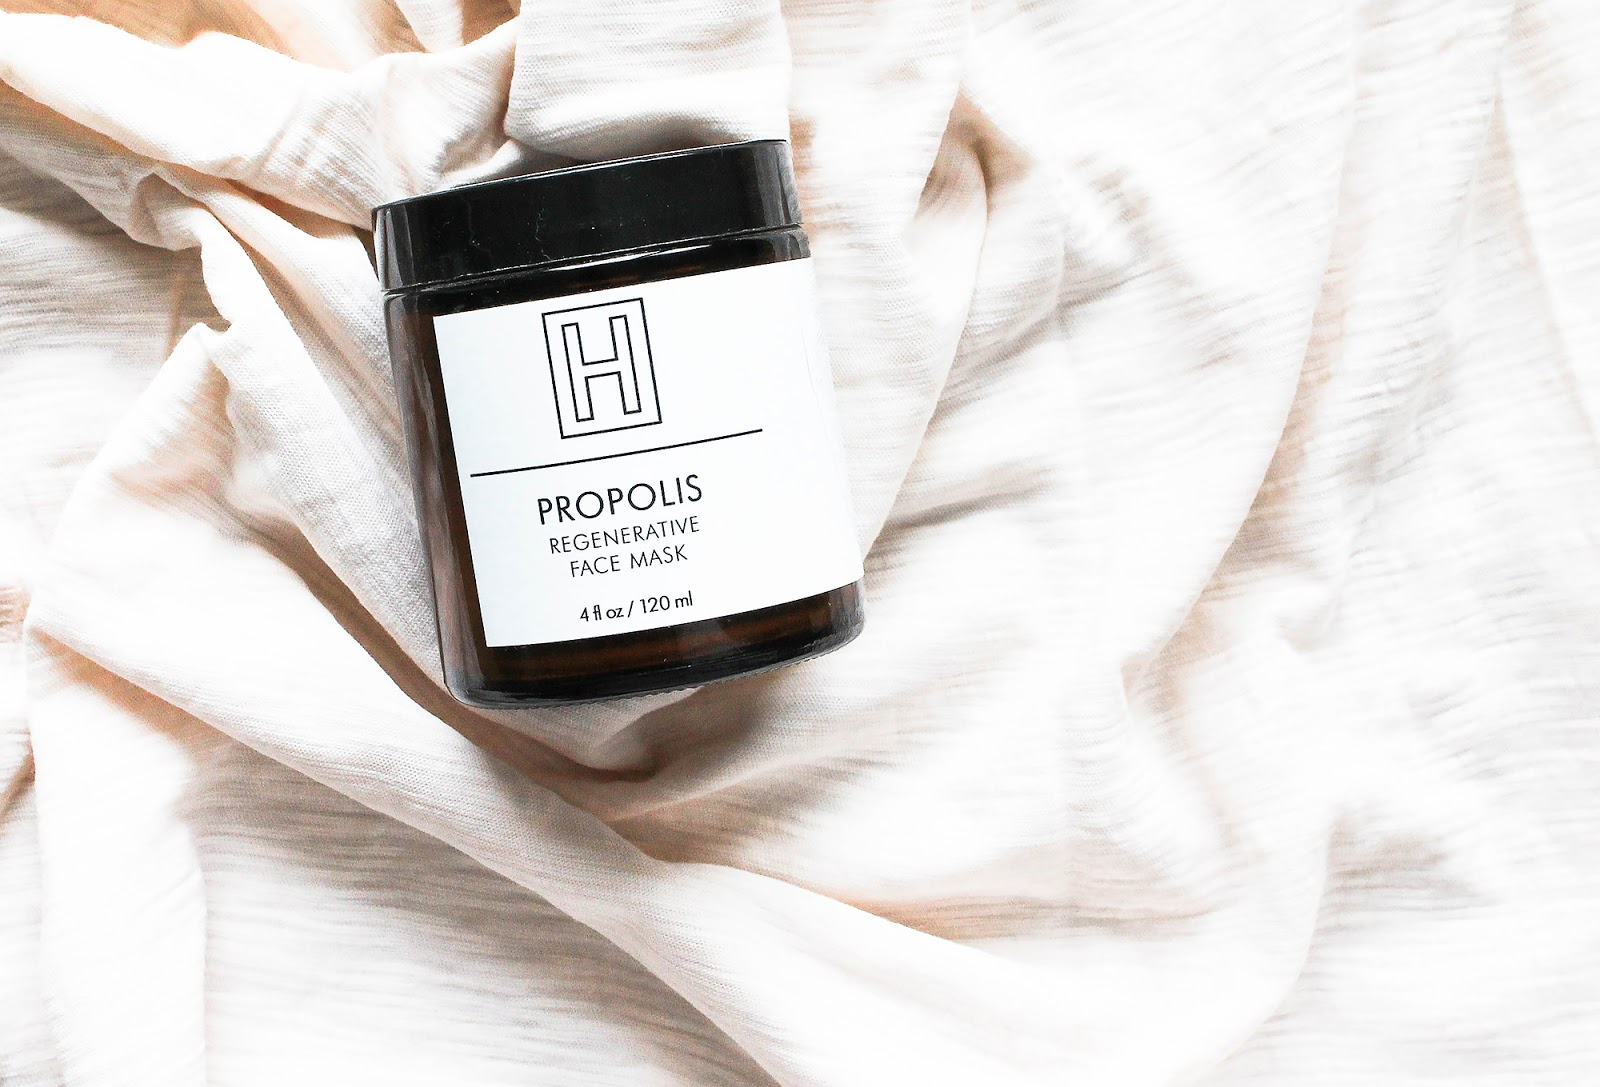 H IS FOR LOVE Propolis Regenerative Face Mask. Purifying, stimulating, brightening. So Natural Beauty.